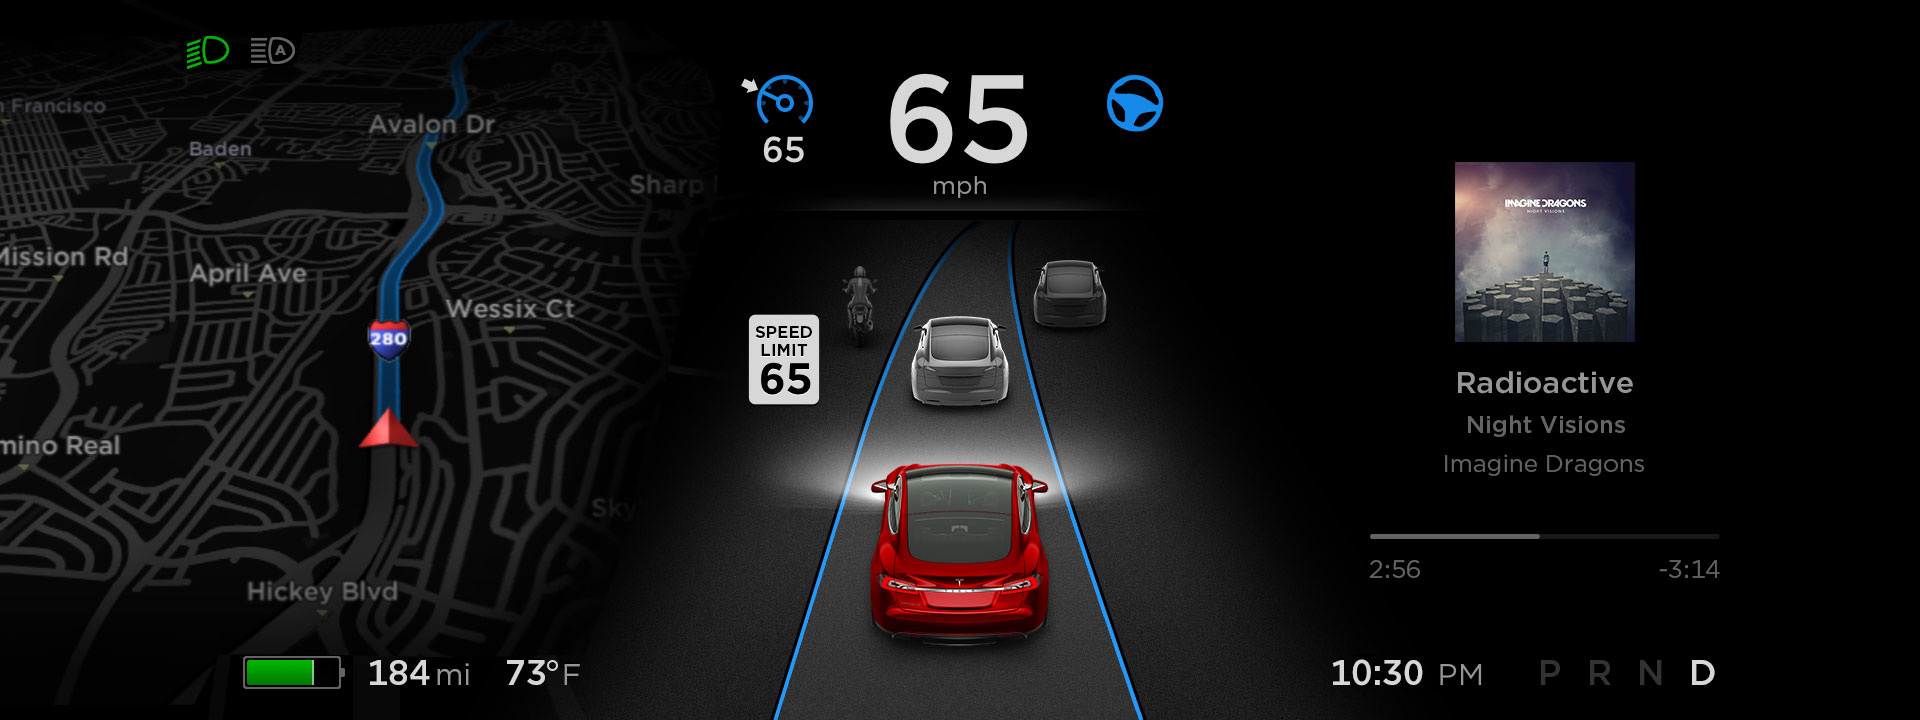 Tesla 8.0 navigation screen